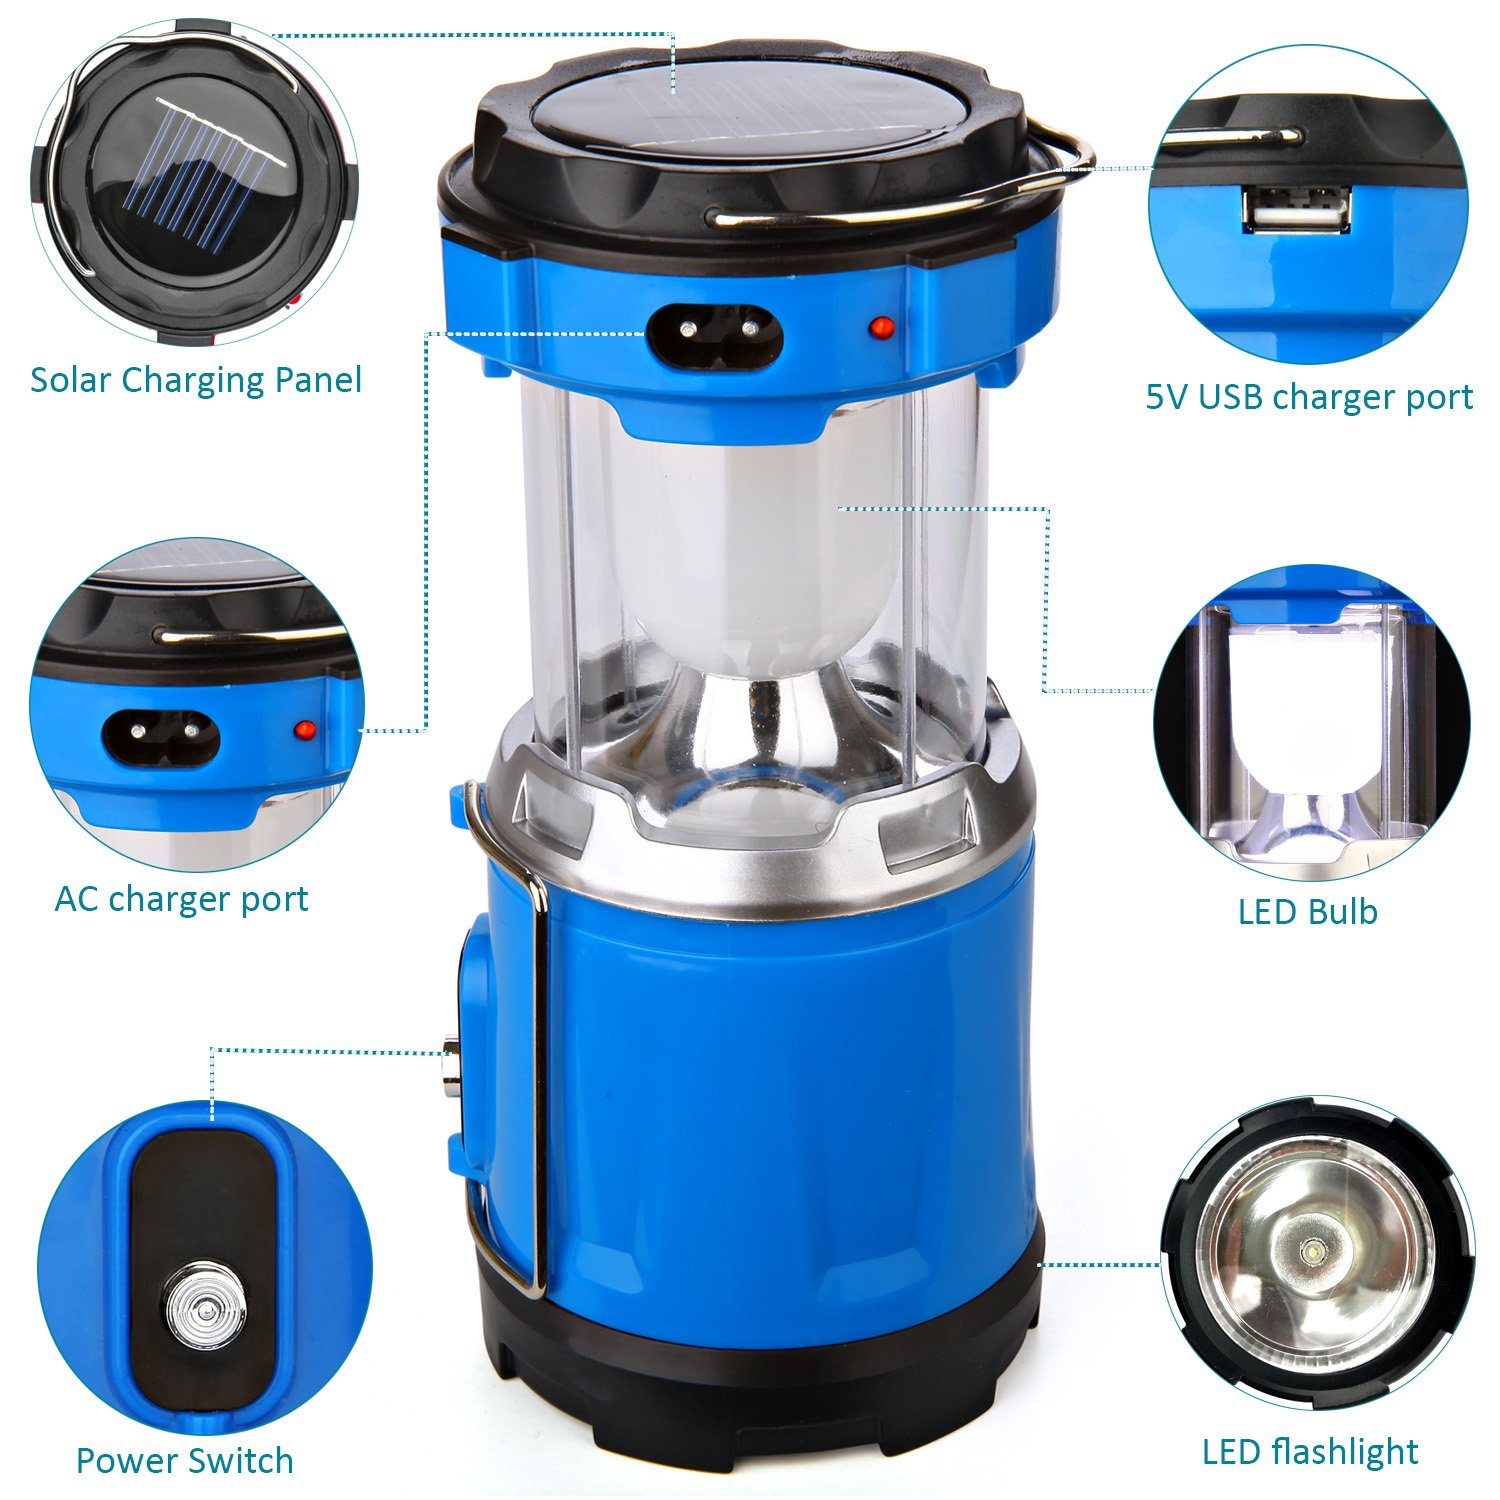 Camping Lantern Light, IRuiYinGo Rechargeable Lamp Solar LED Flashlight with Hanging Blue Color, Great light for Camping/ Hiking/ Backpacking...Outdoor Activities by IRuiYinGo (Image #3)